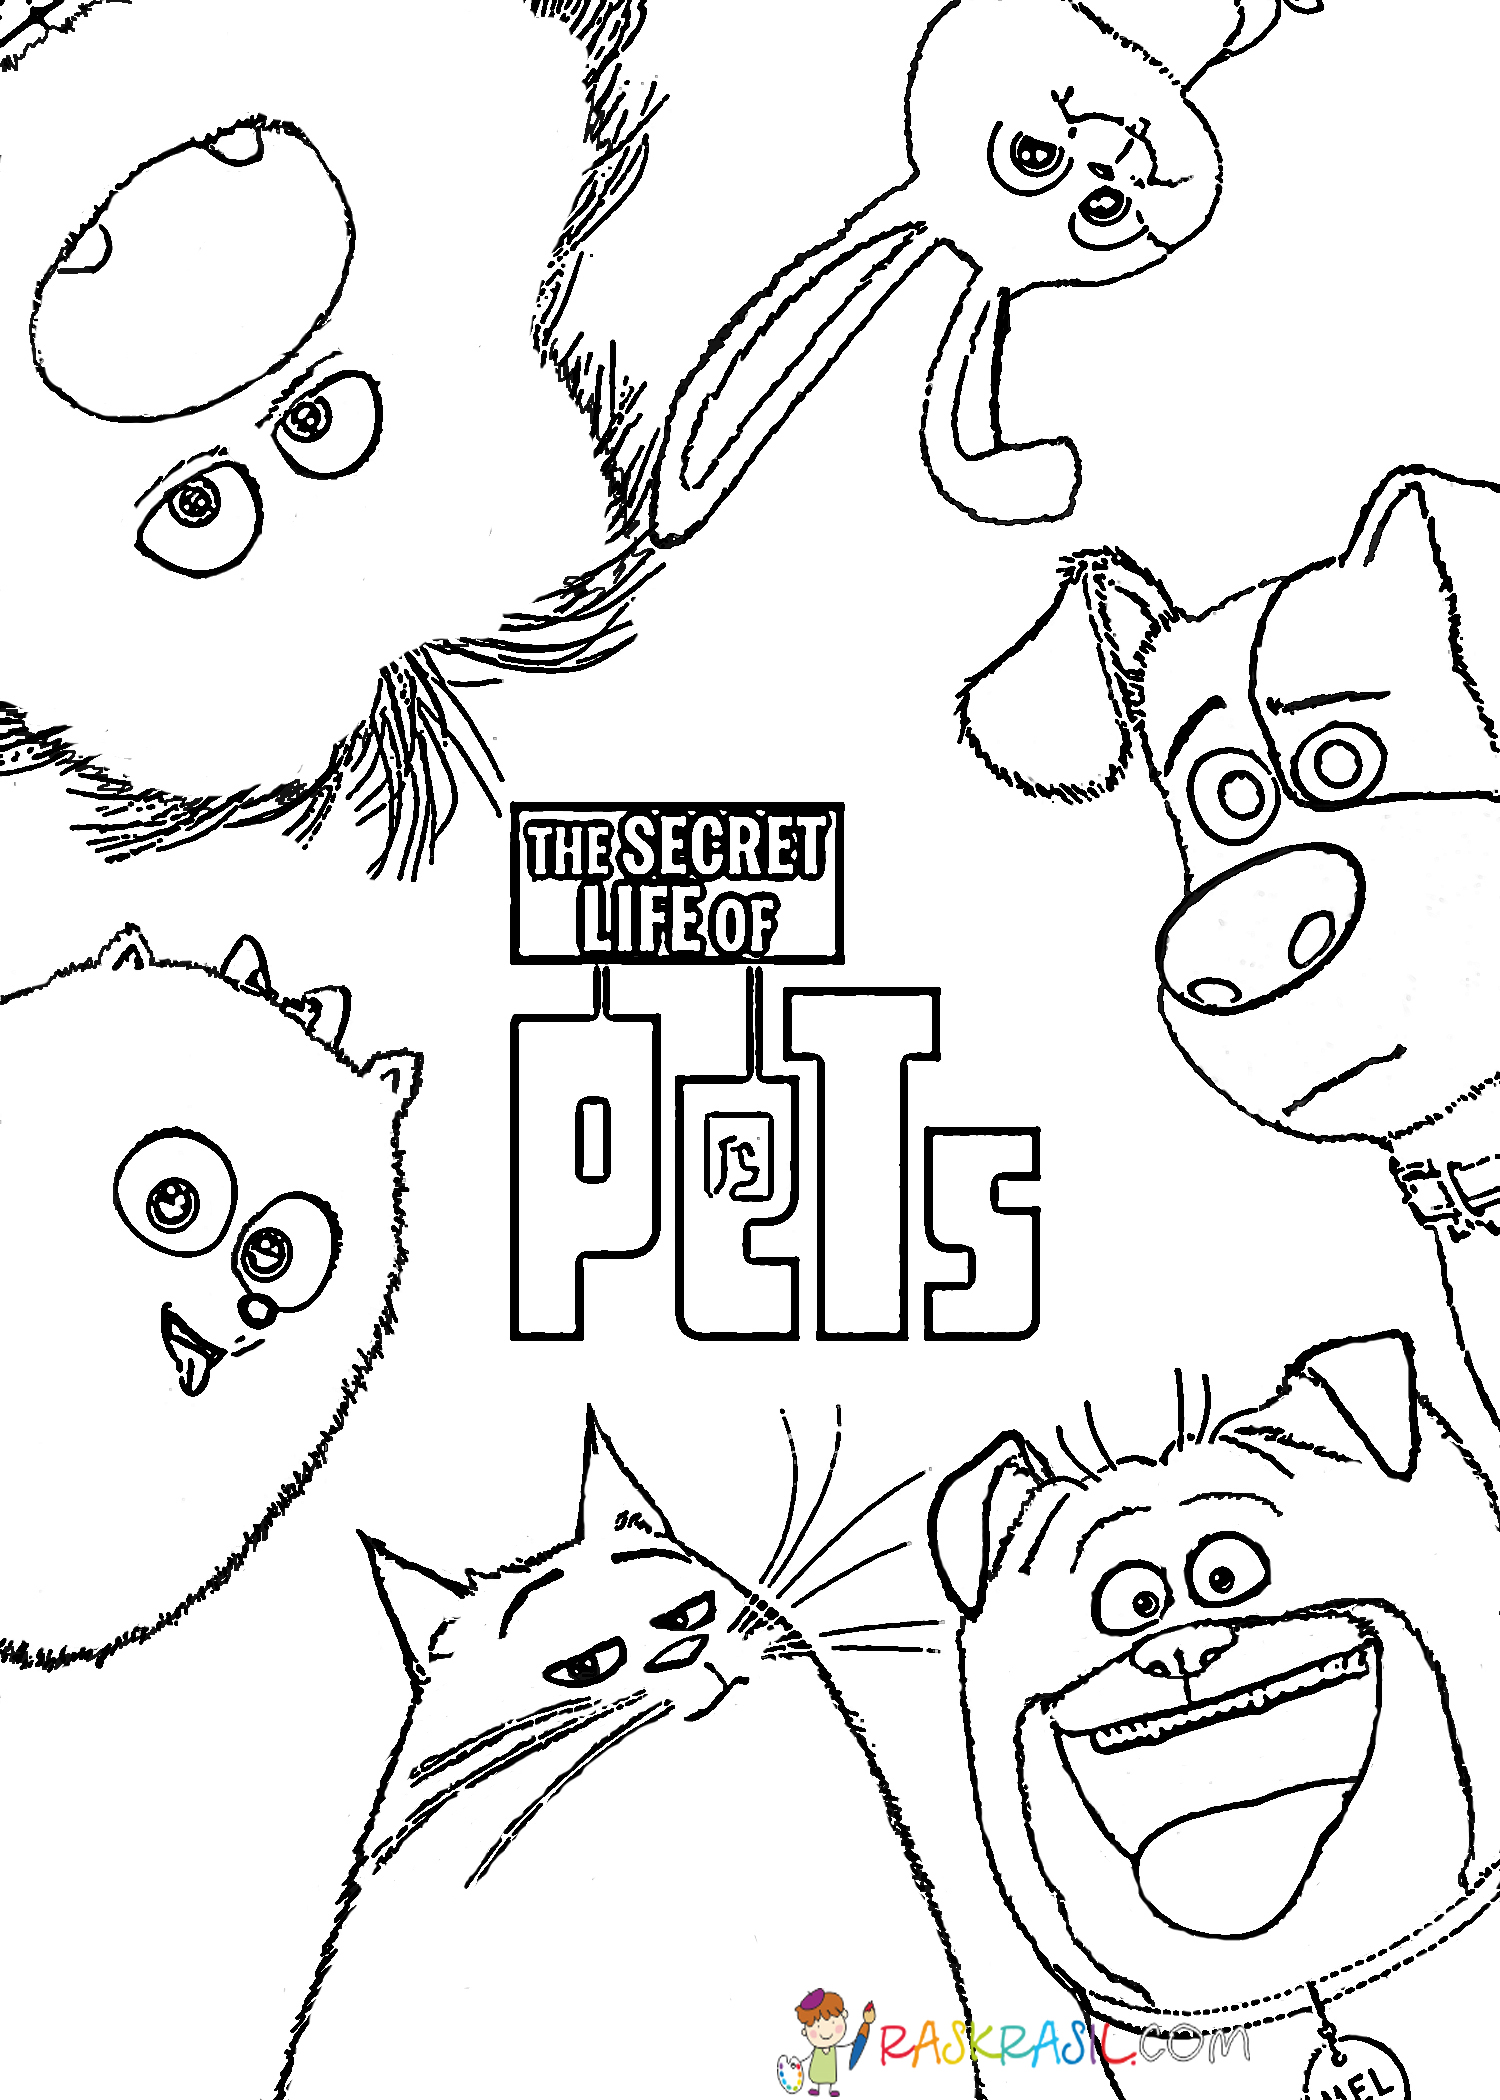 little life pets coloring pages max from the secret life of pets coloring page free pets coloring life pages little